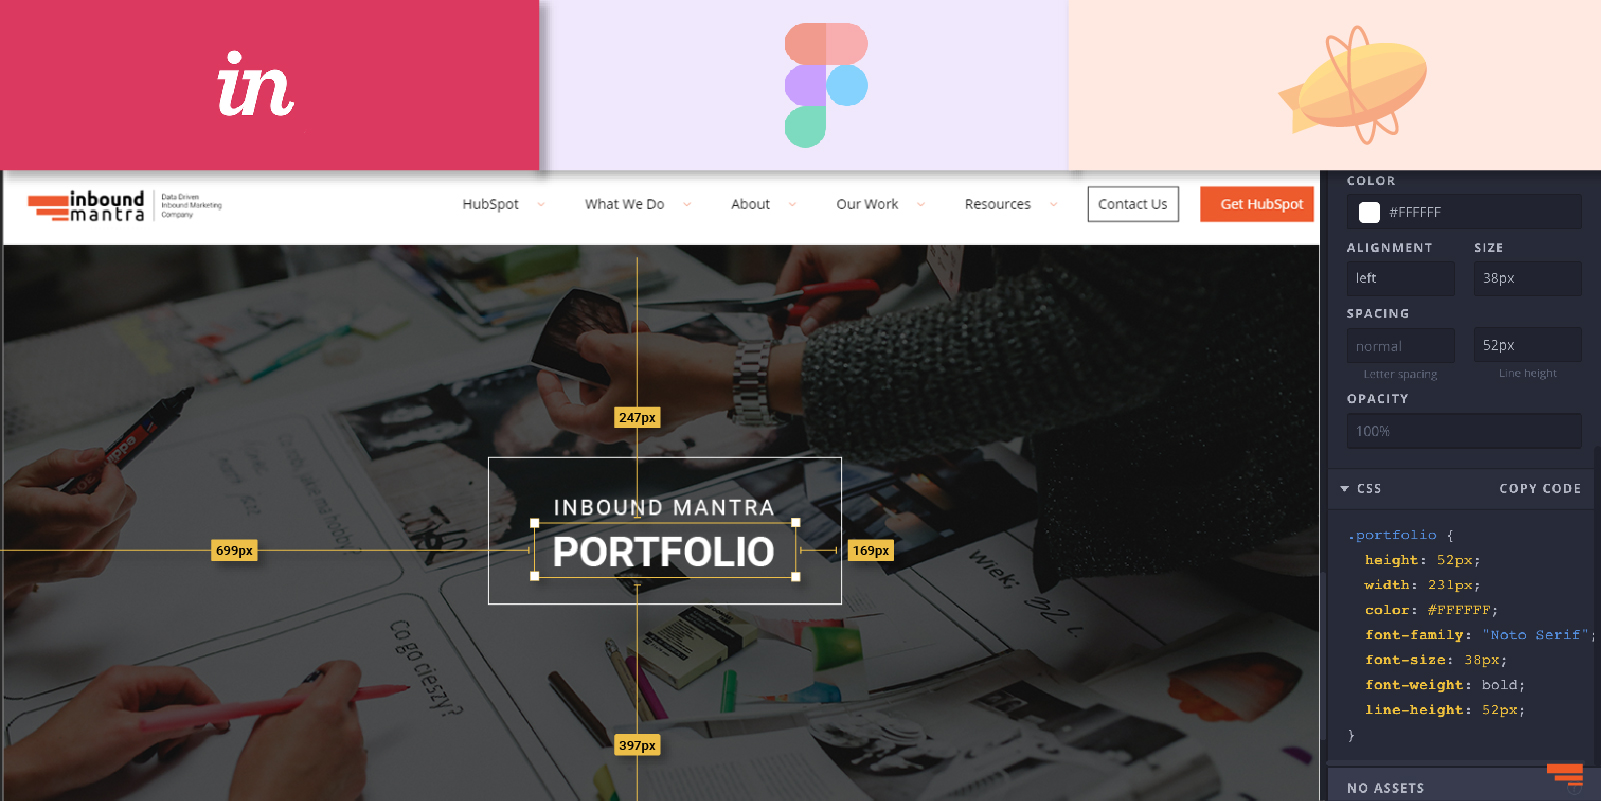 How to easily get the styling code (CSS) with web design tools?